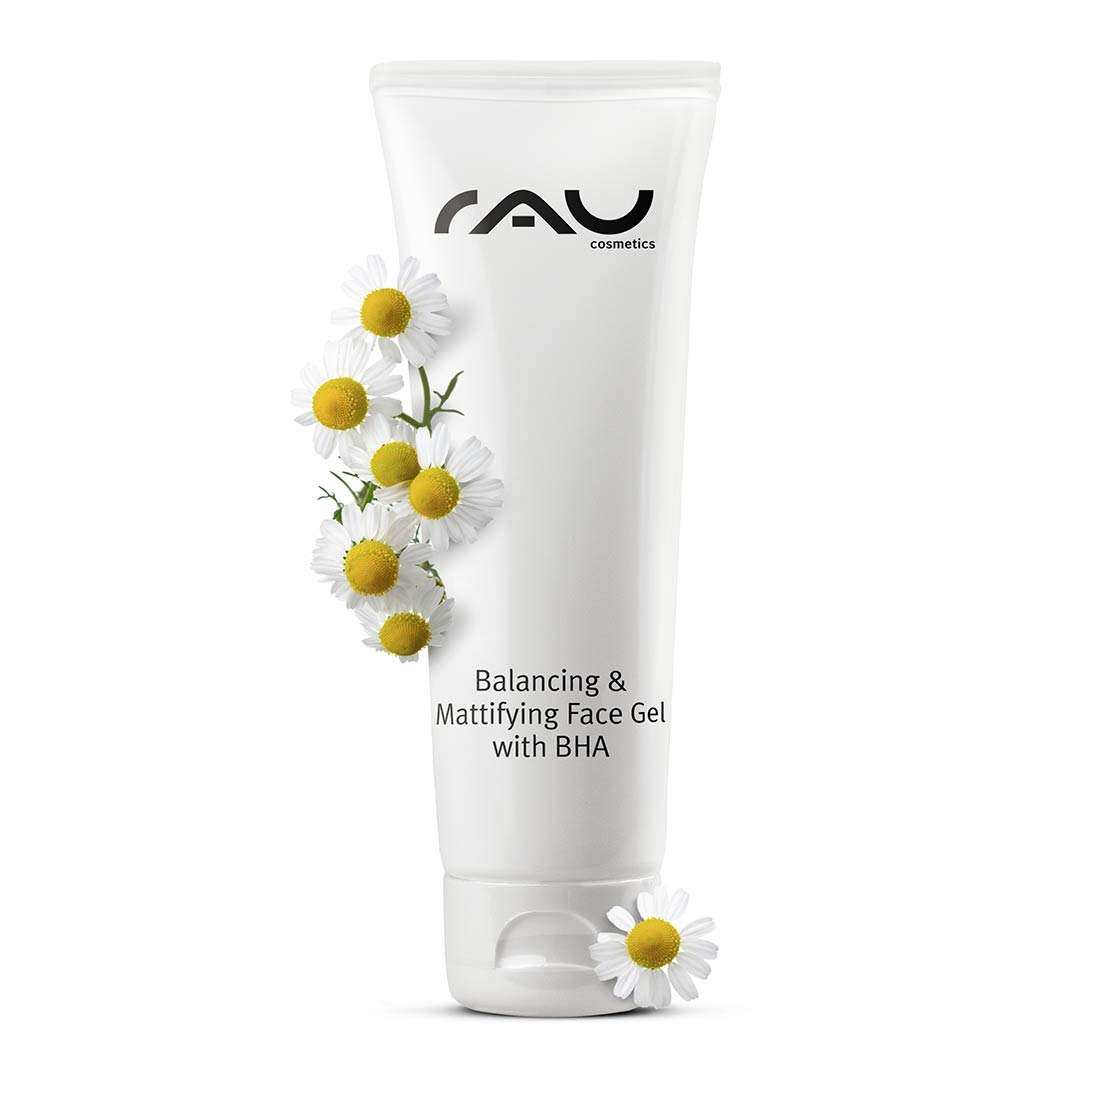 RAU Balancing Mattifying Excellence Face Gel Safety and trust with 2.54 75ml BHA - oz